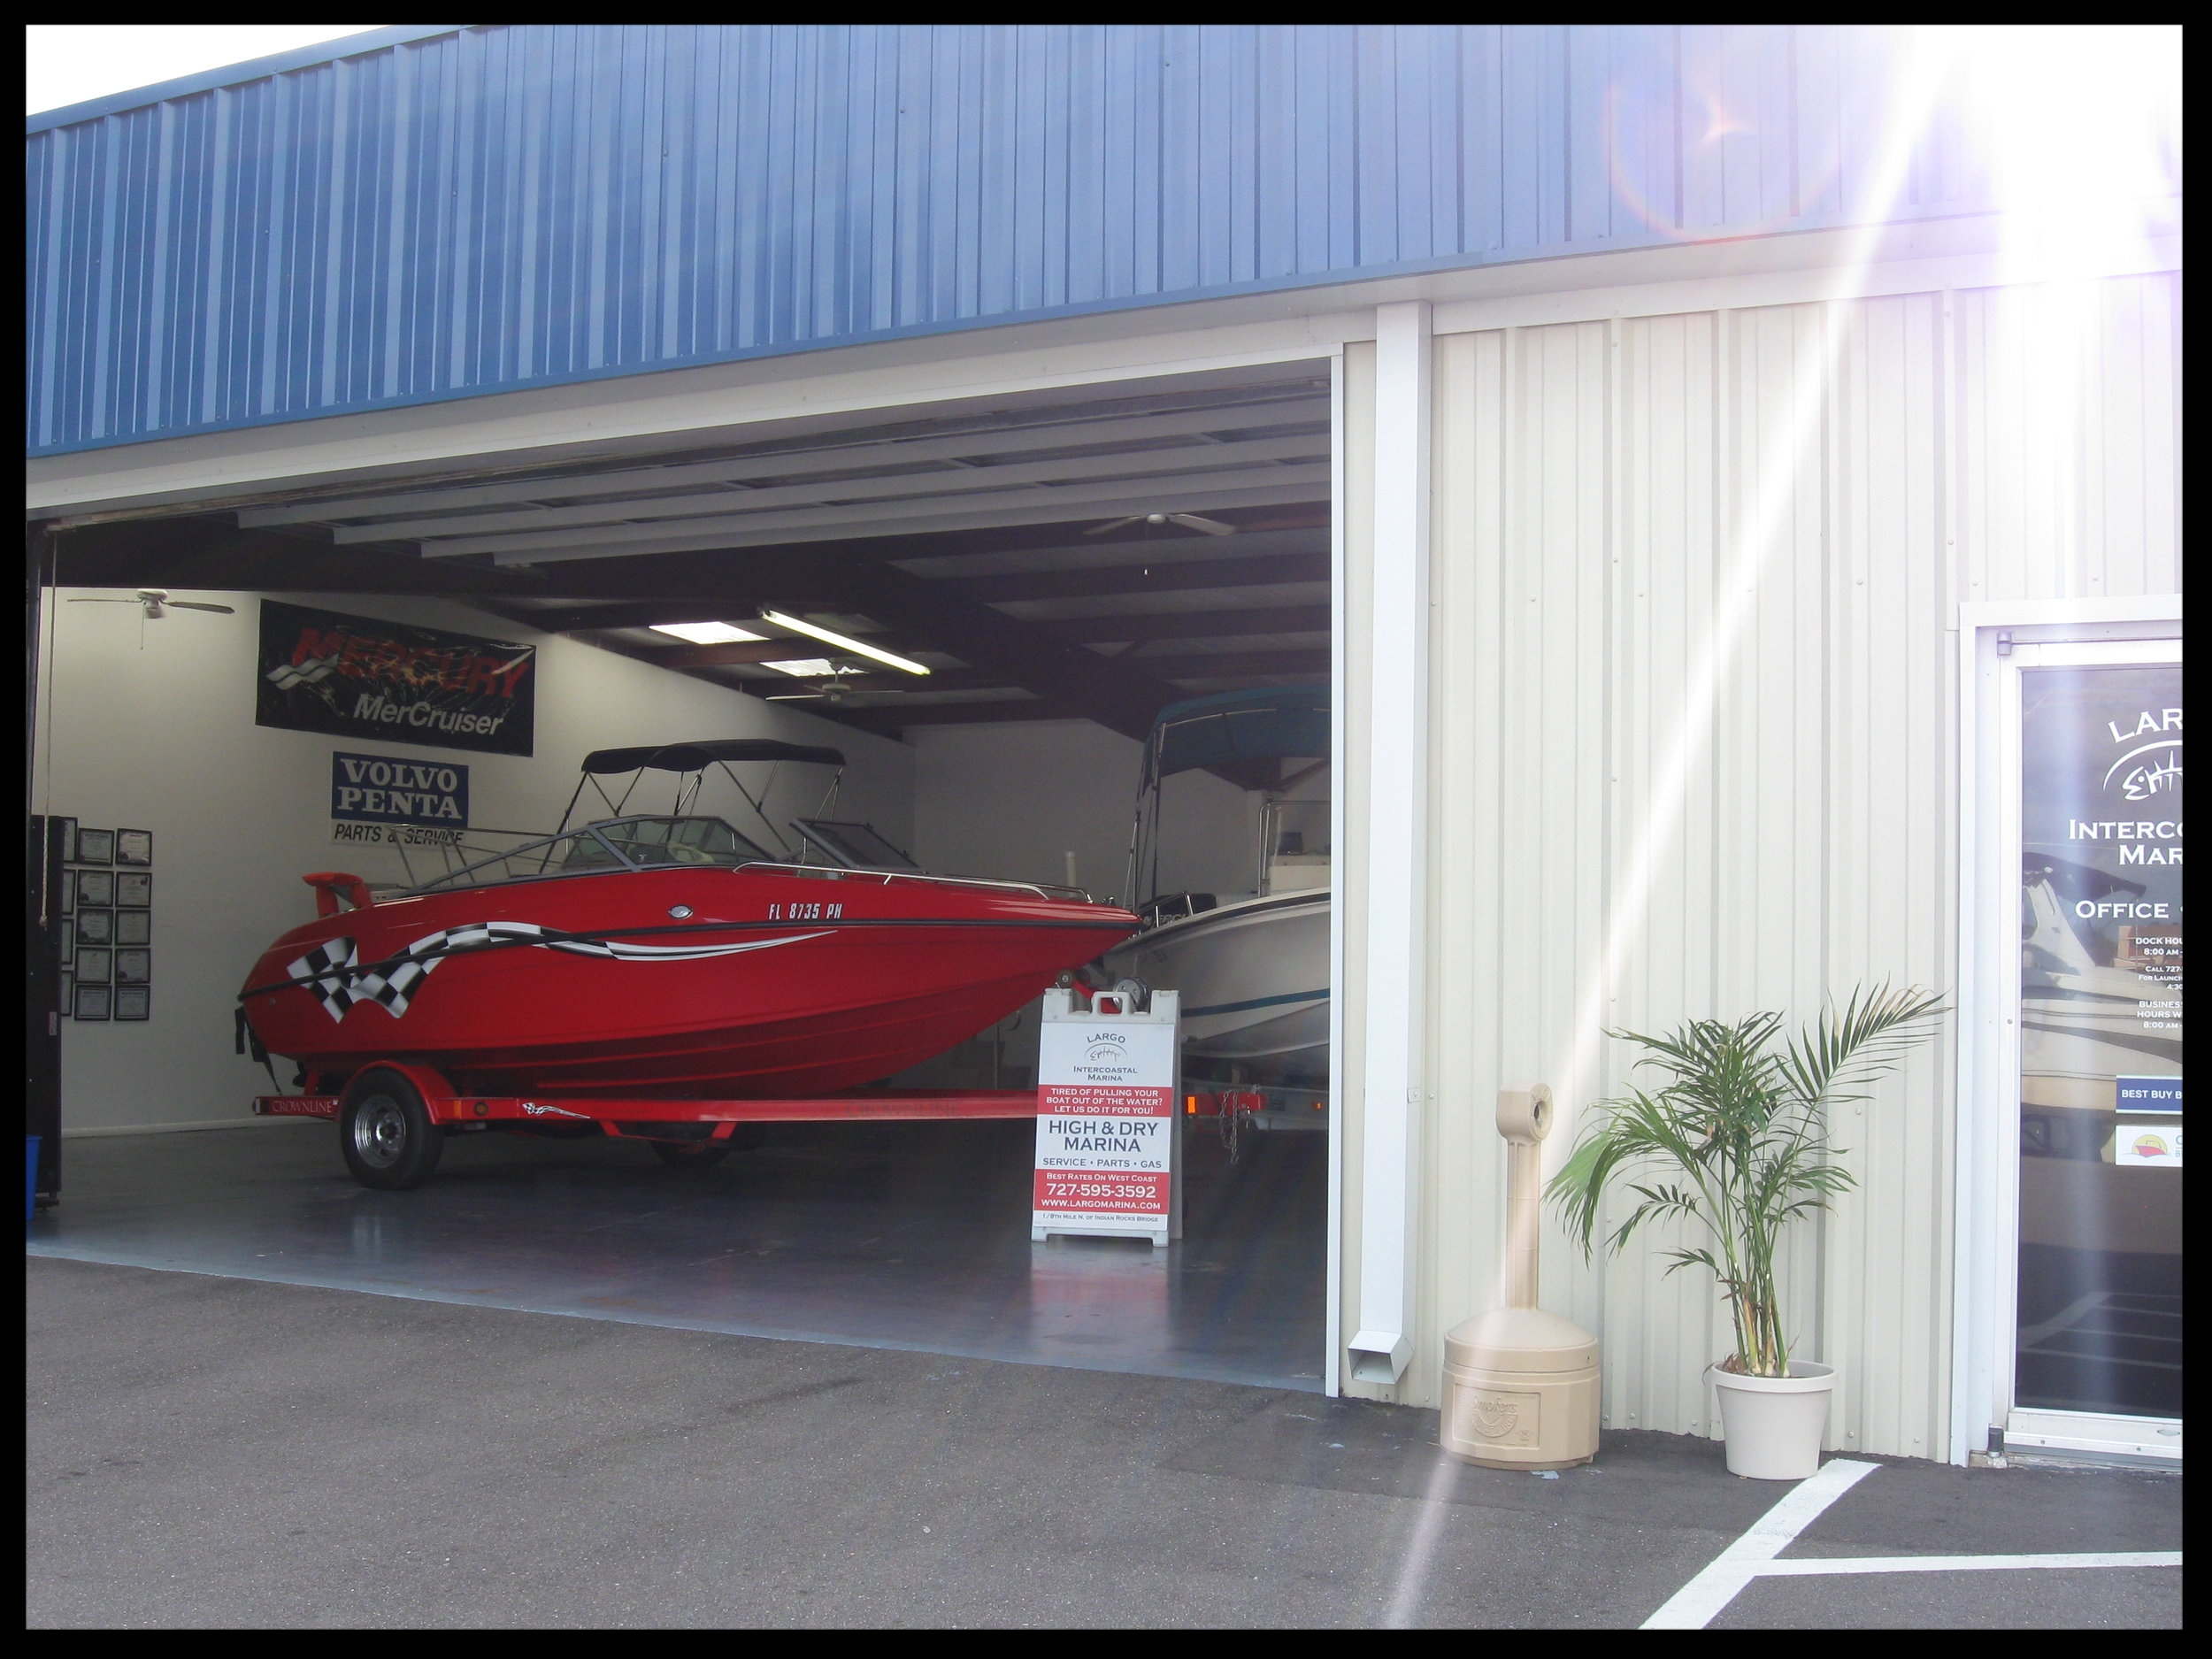 - BEST BUY BOATSHere at Largo Intercoastal Marina, we are affiliated with Best Buy Boats, a brokerage service with over 20 years experience. If you are in the market for a new boat, give Bill Pritchard or John Anderson a call and they will assist you in getting your new toy.(727) 271-0196